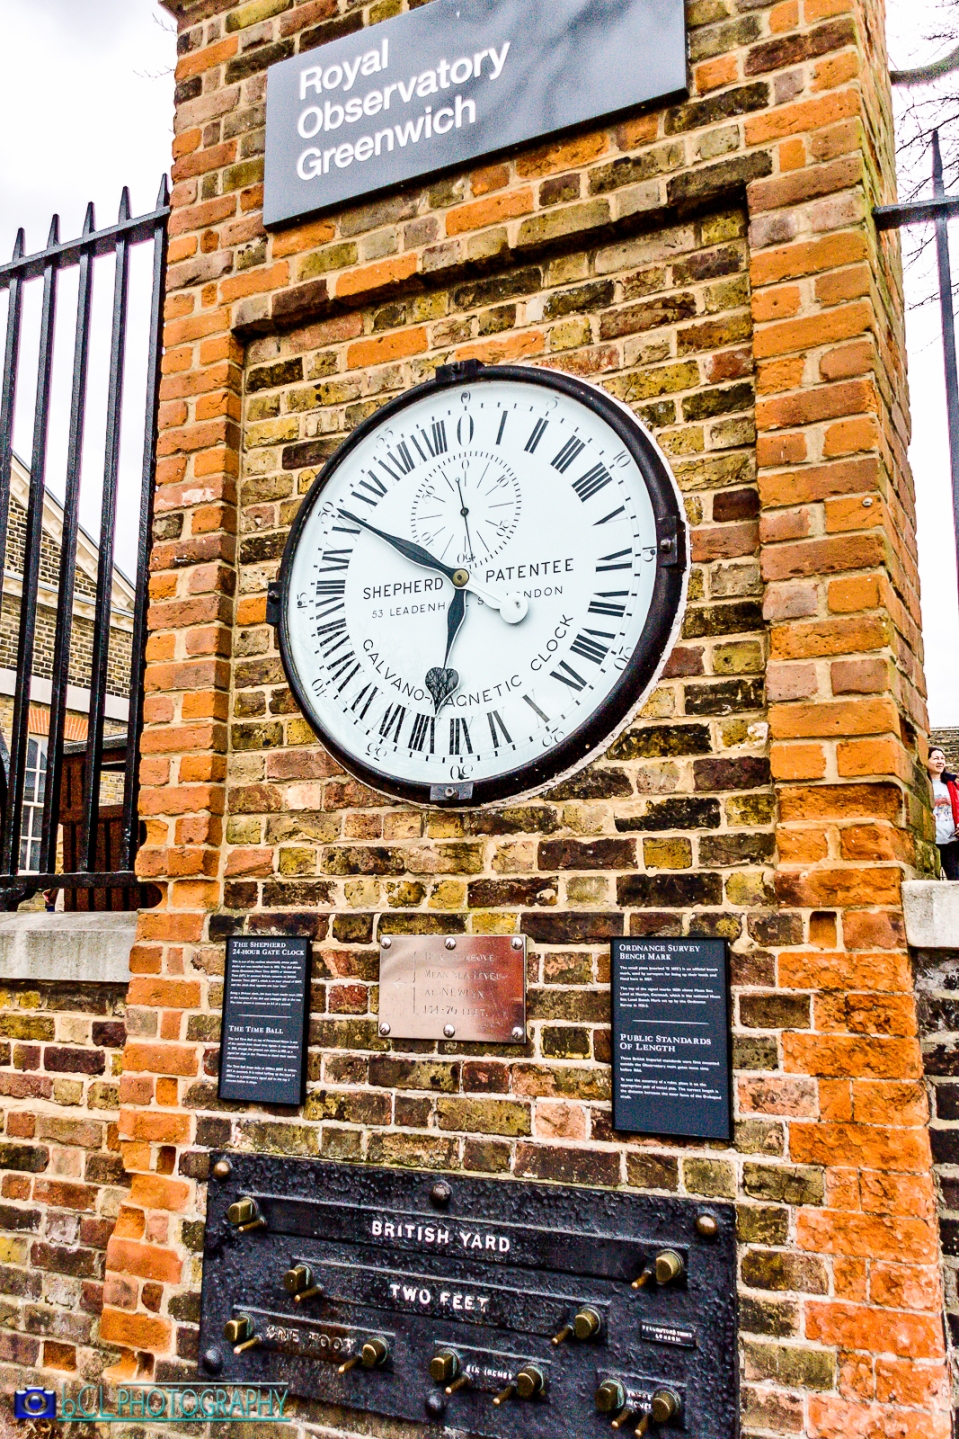 Shepherd Gate Clock. Royal Greenwich Observatory